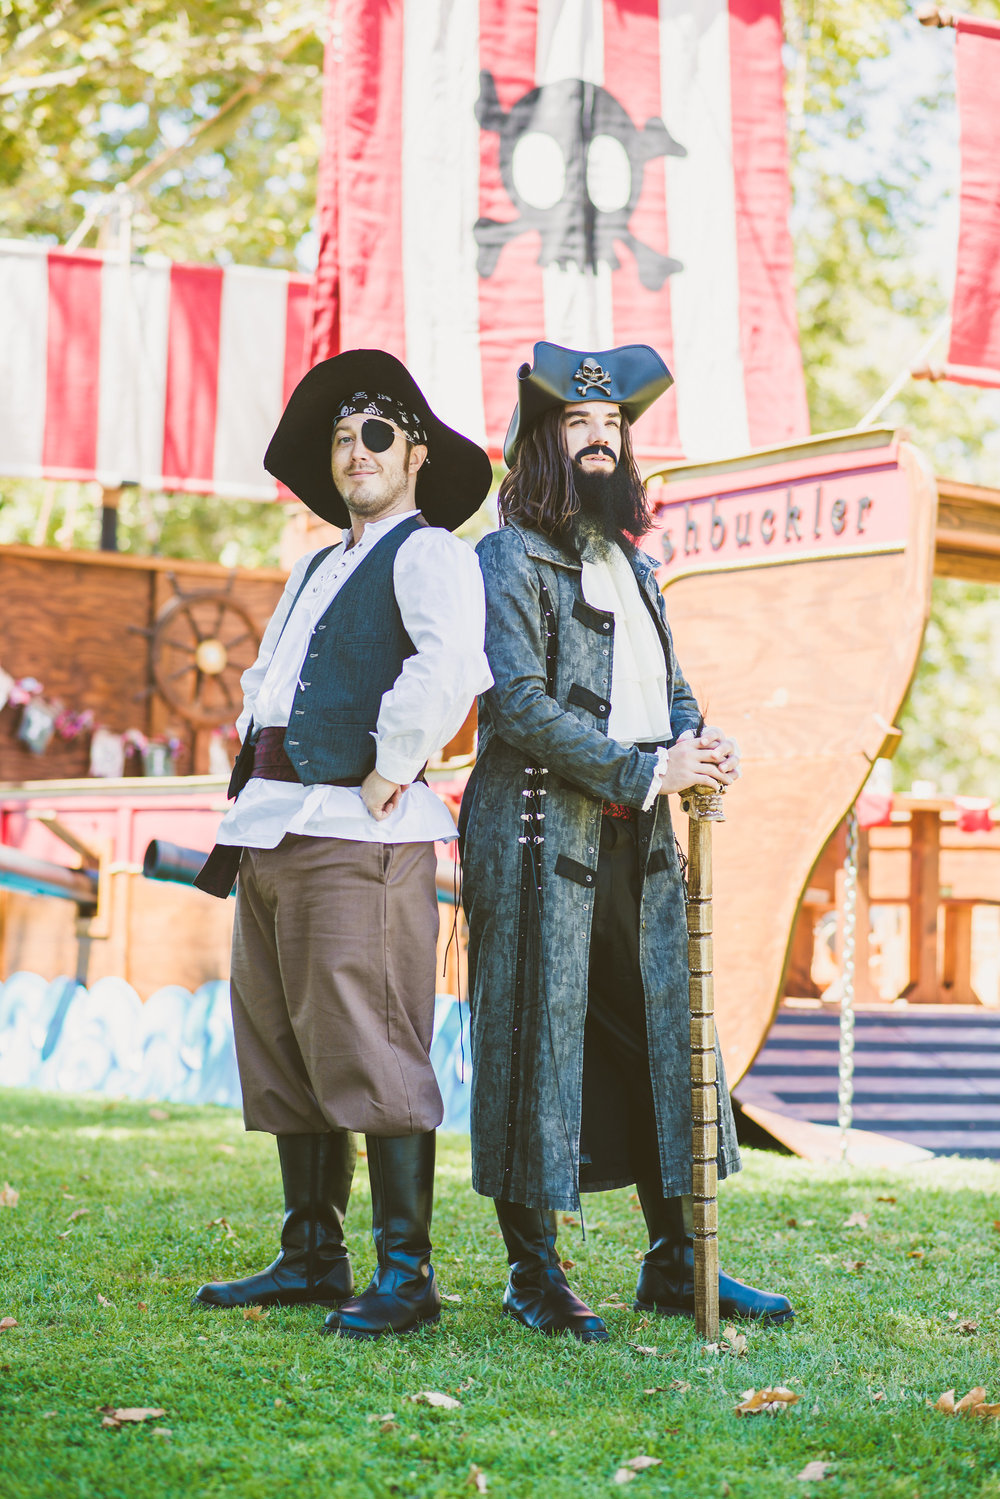 Blackbeard and his first mate - smitty - PHoto by Natasha Sadikin